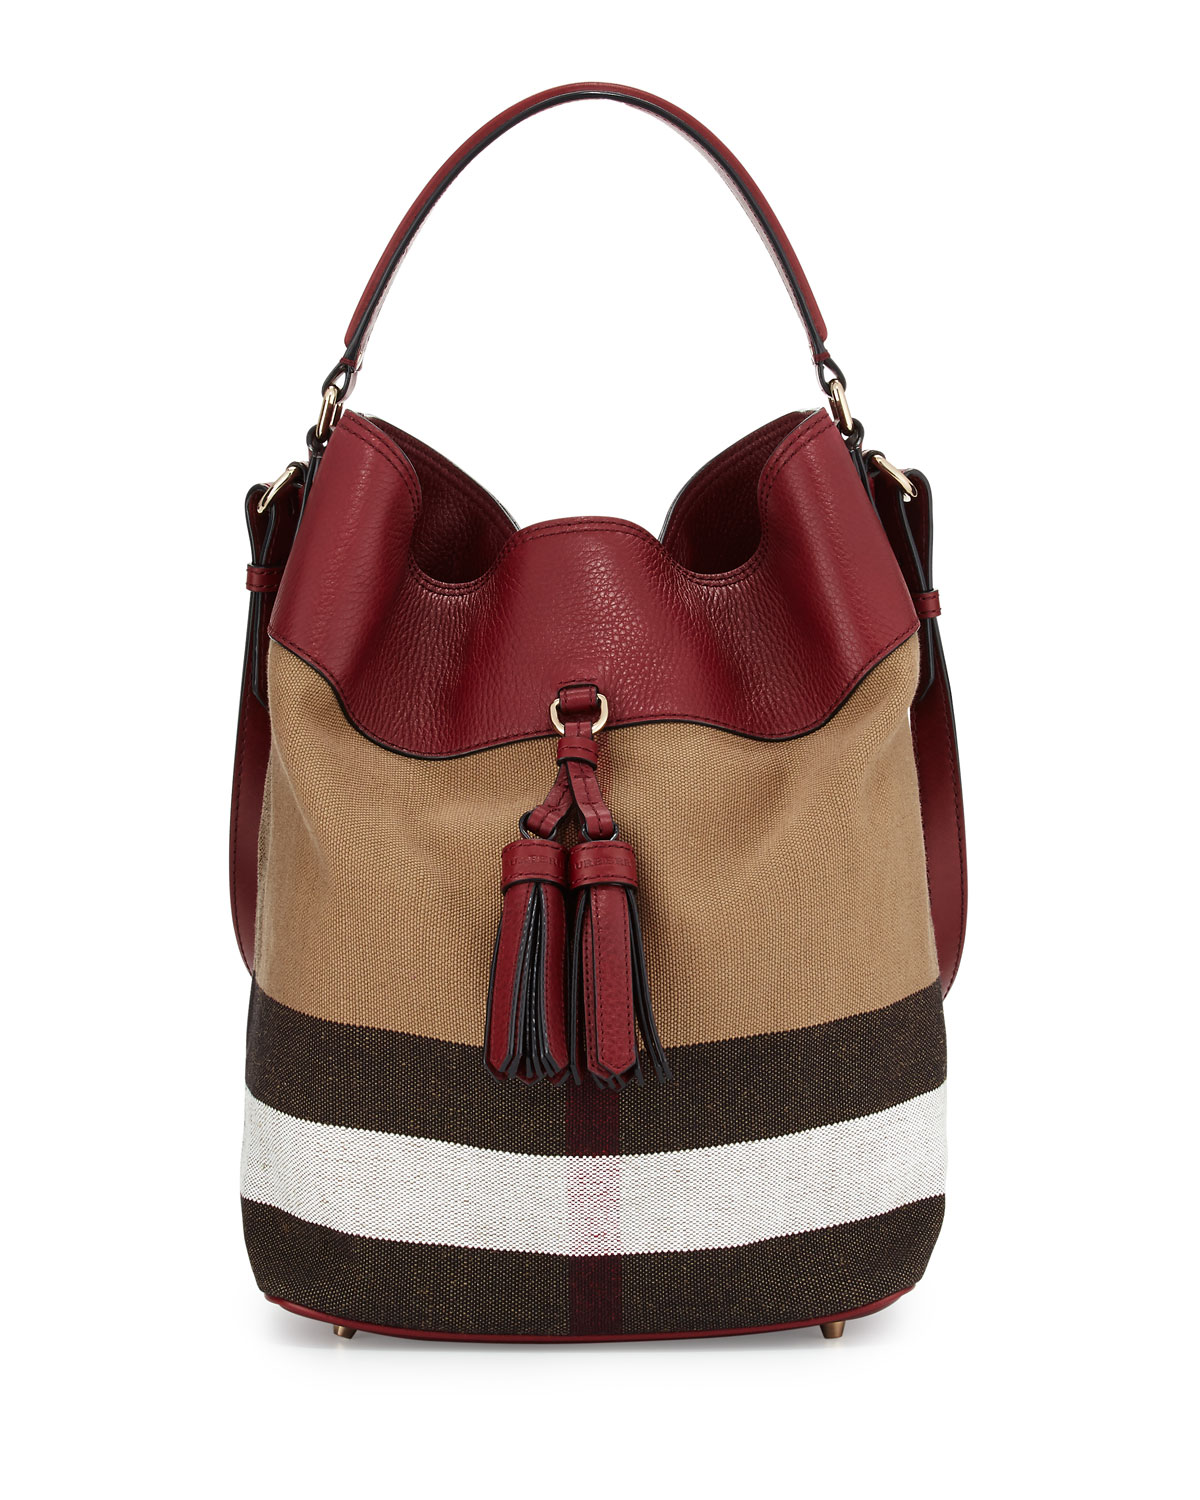 deb1c19942c2 Burberry Ashby Medium Unstructured Check Leather Bag